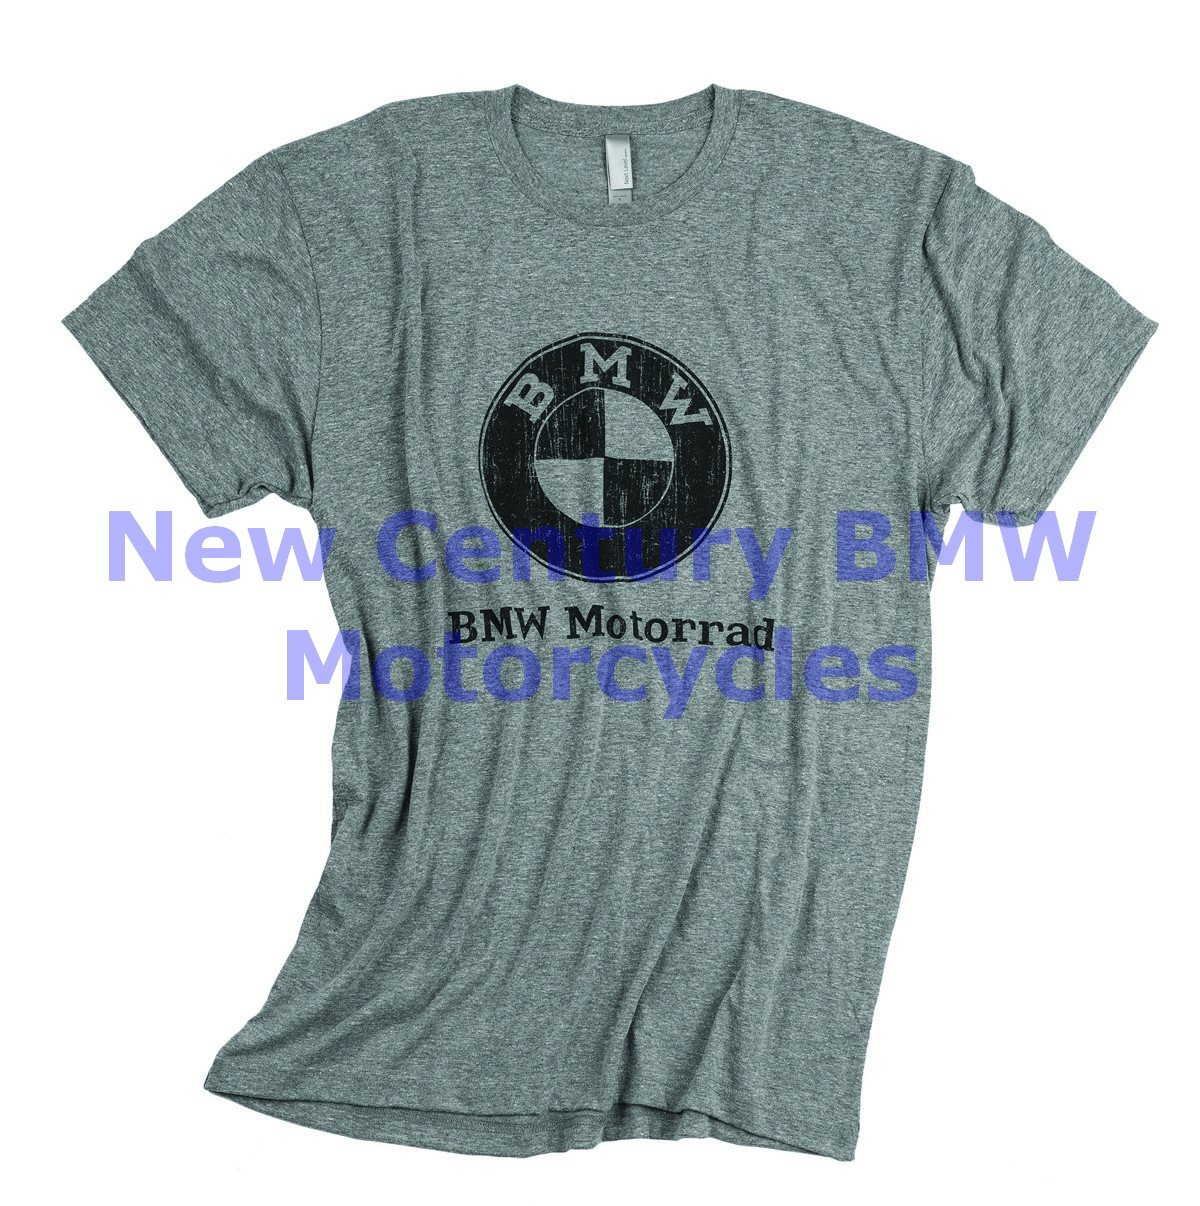 BMW Genuine Motorcycle Men Vintage Distressed T-Shirt Tee Shirt Heather Grey XXL by BMW